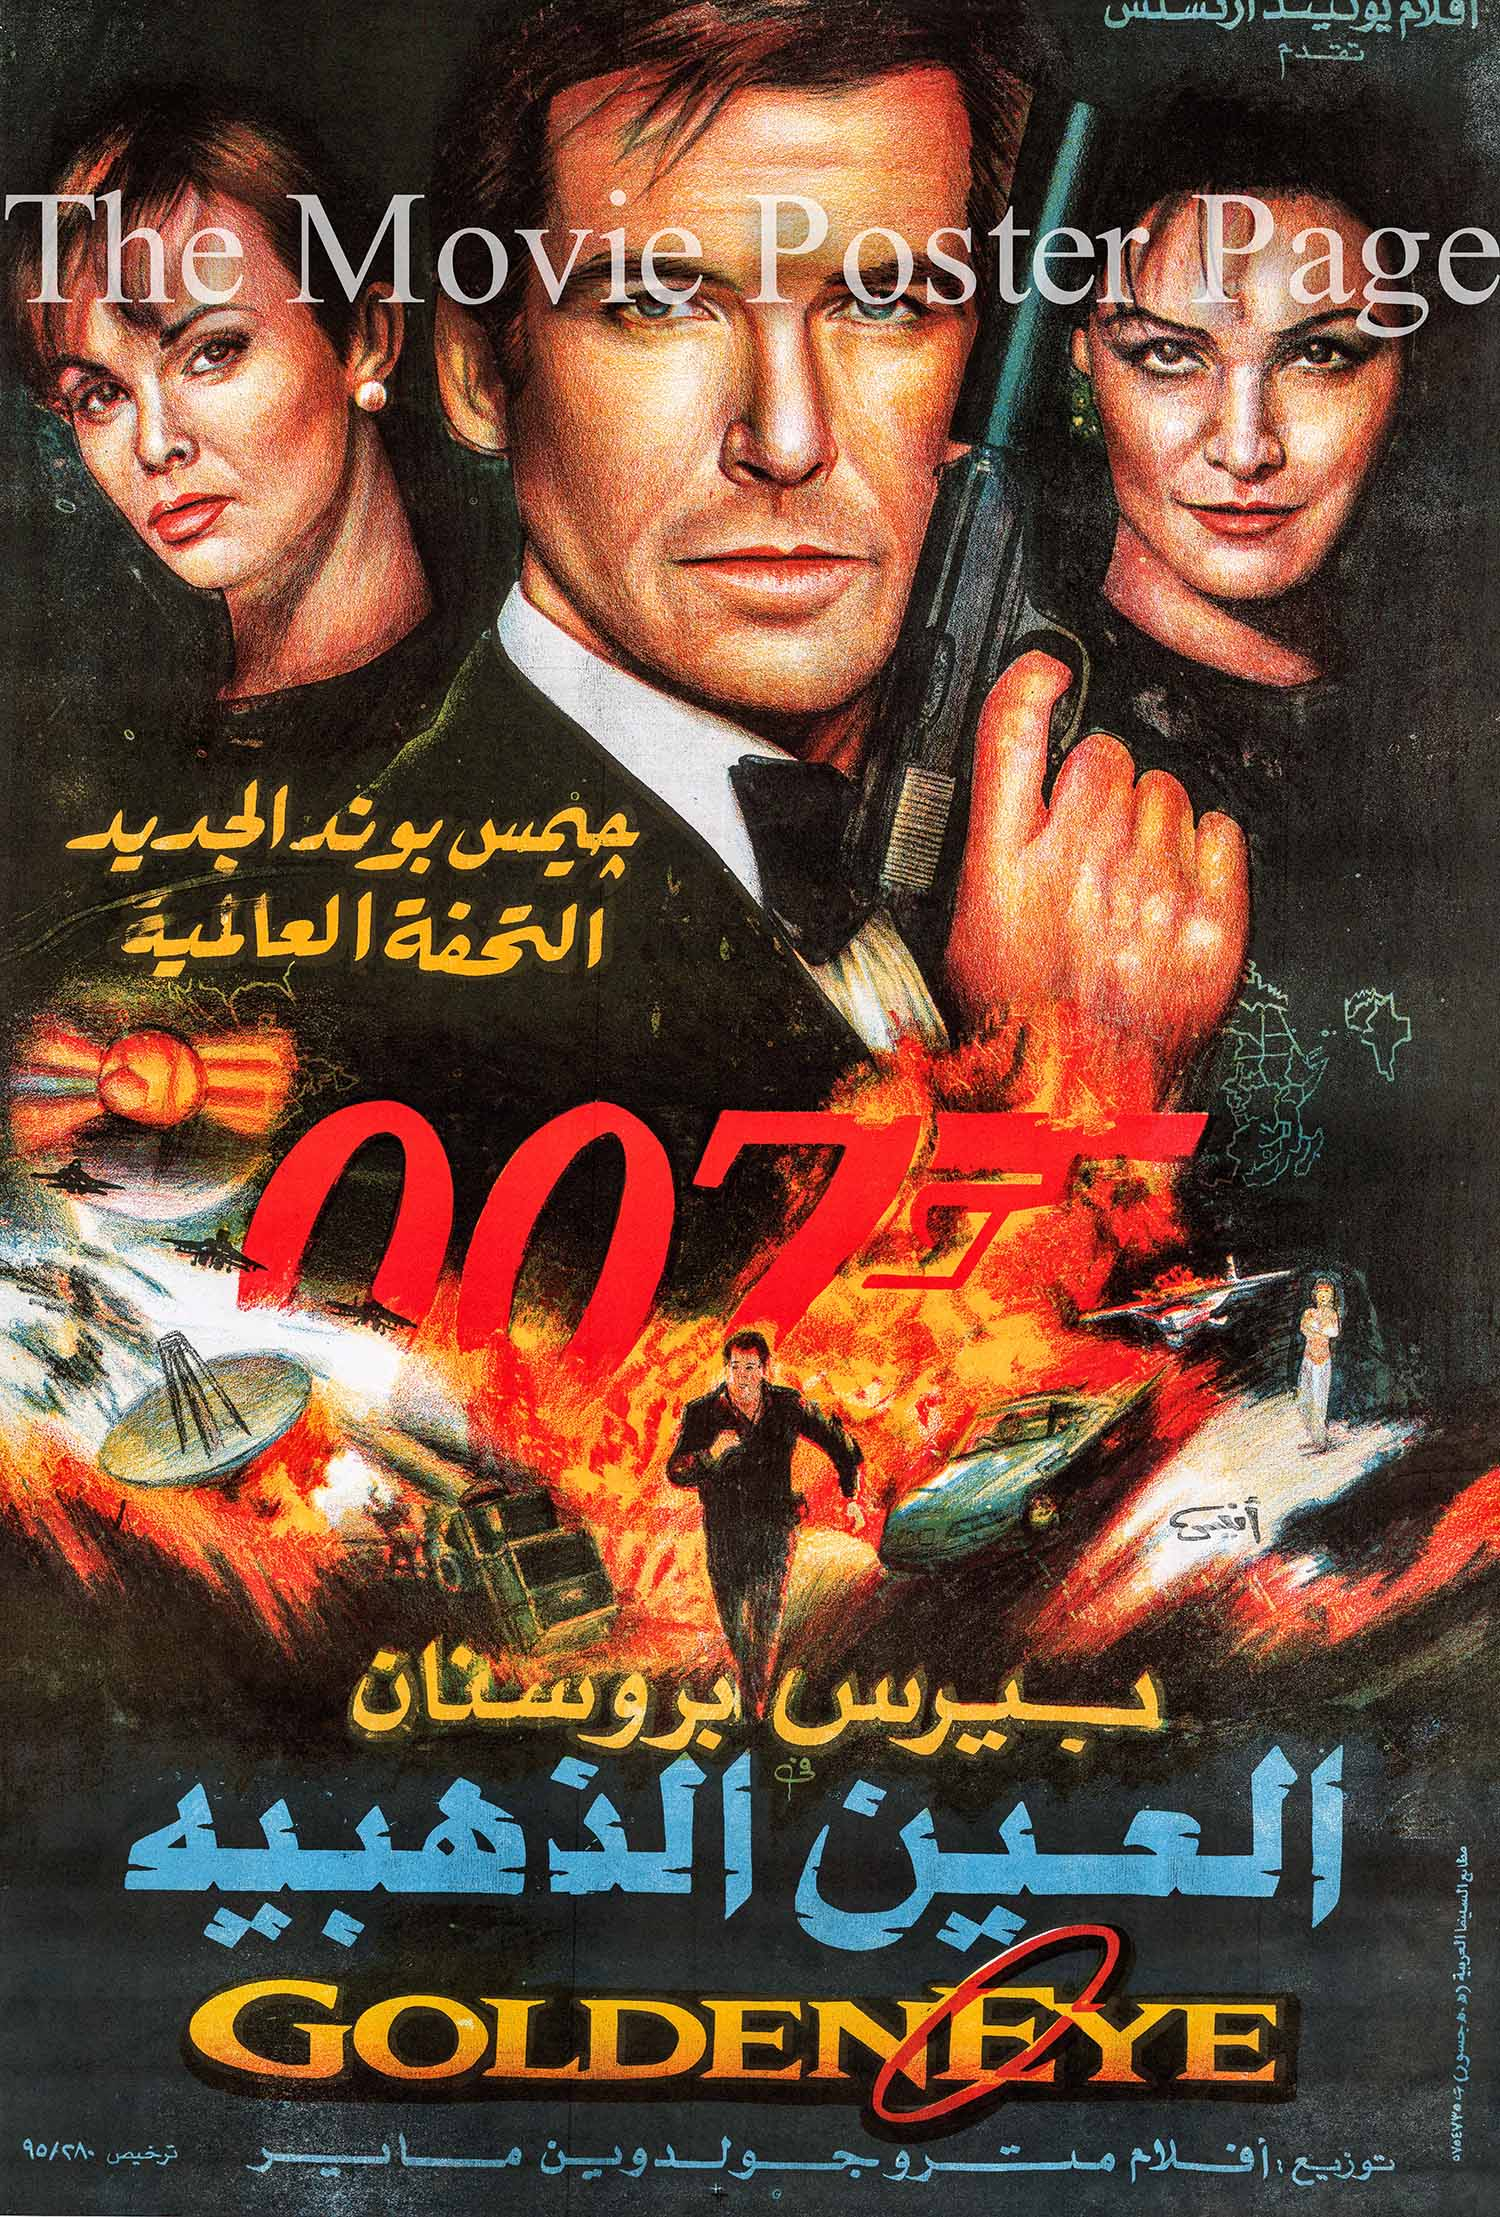 Pictured is an Egyptian promotional poster for the 1995 Marti